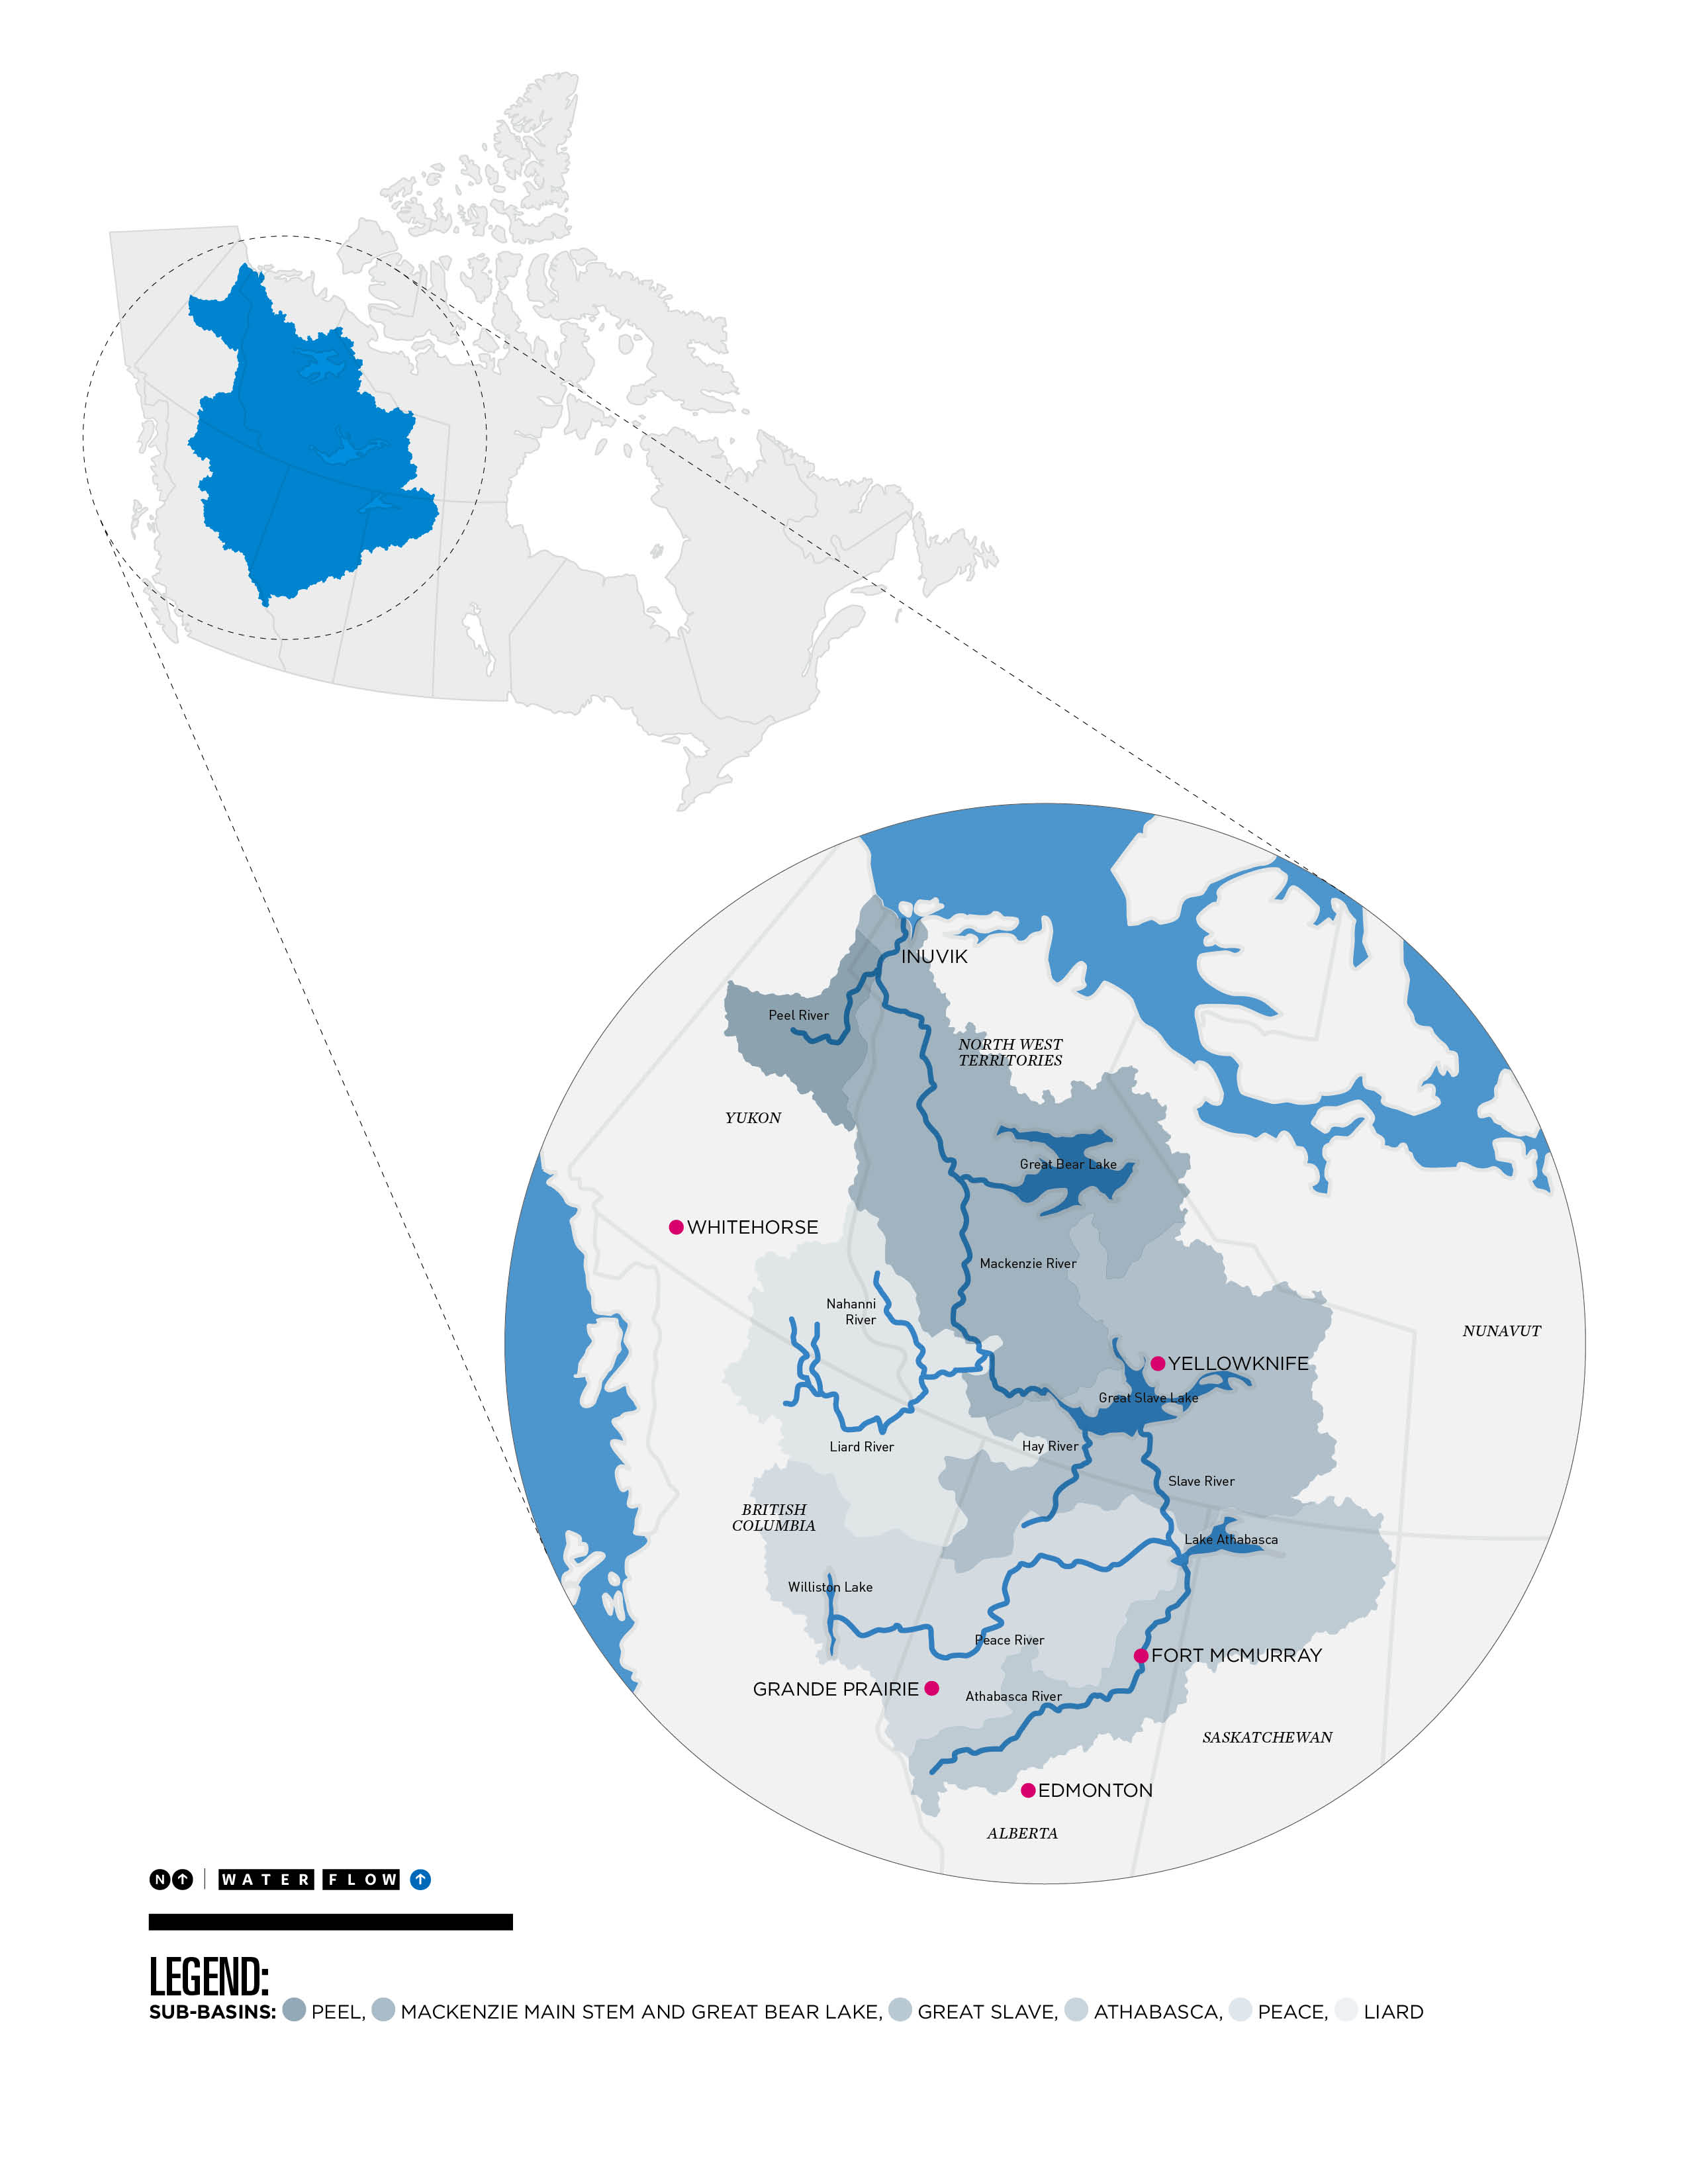 Catastrophic changes underway in canadas northern mackenzie river potentially catastrophic changes underway in canadas northern mackenzie river basin report publicscrutiny Choice Image